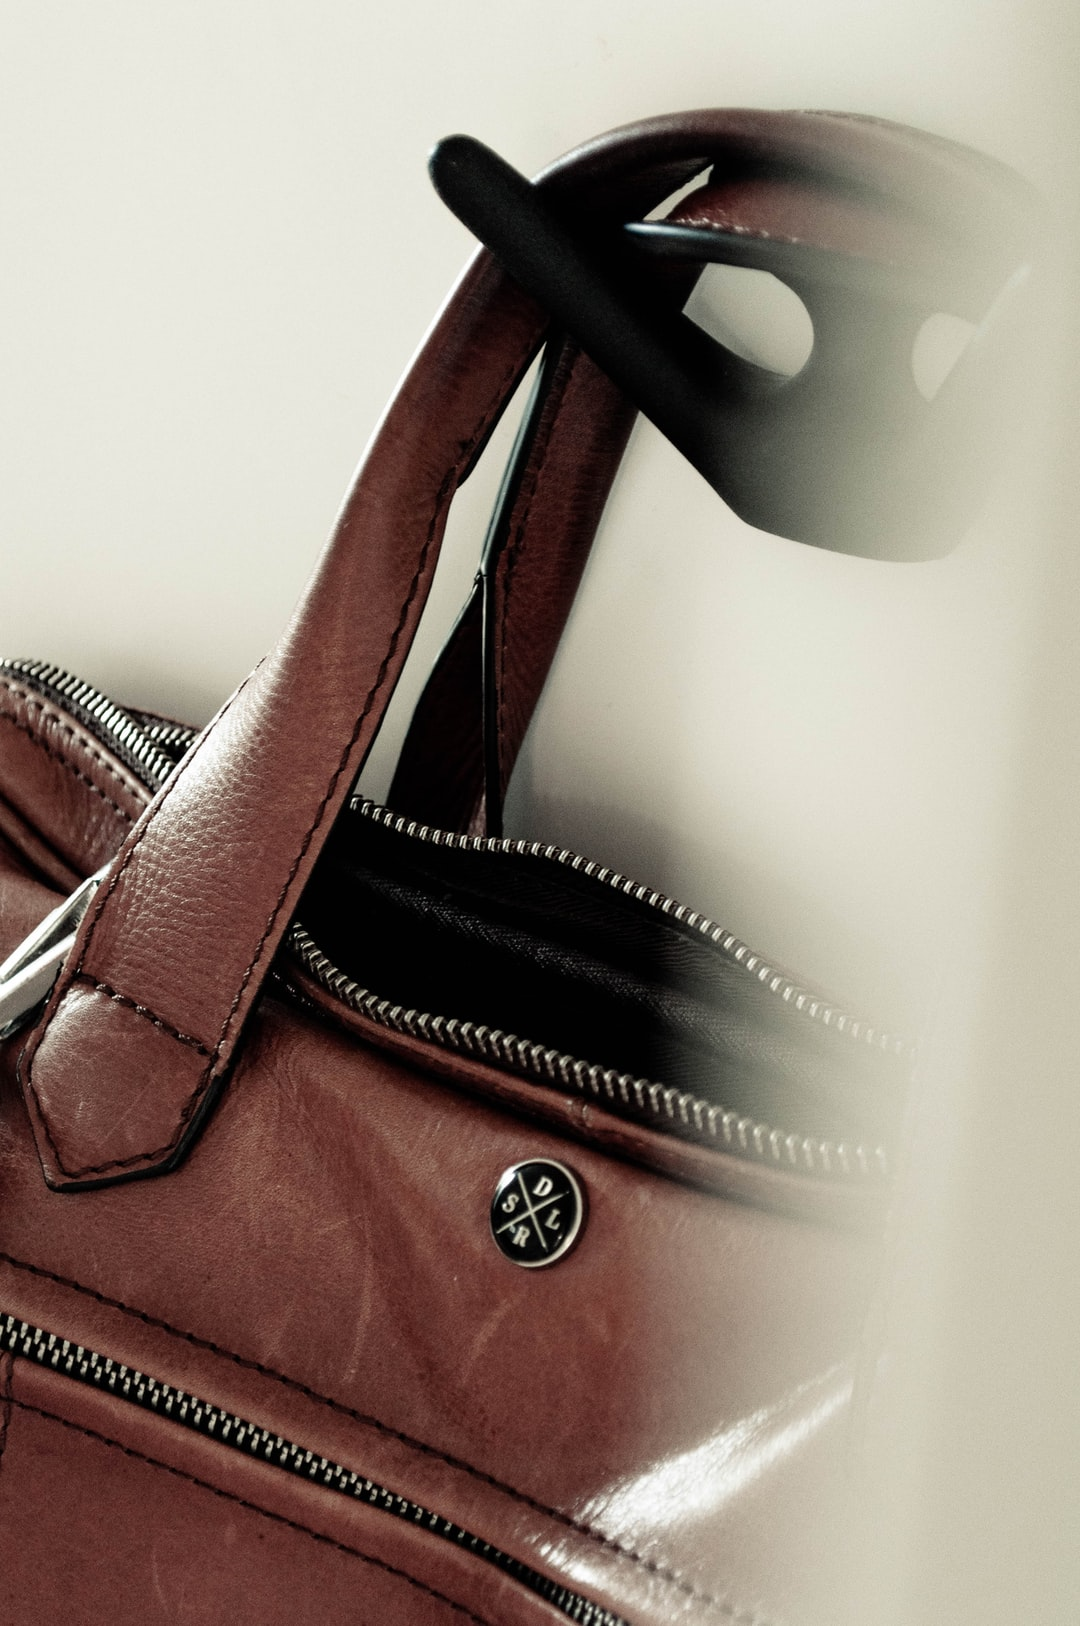 A leather bag.